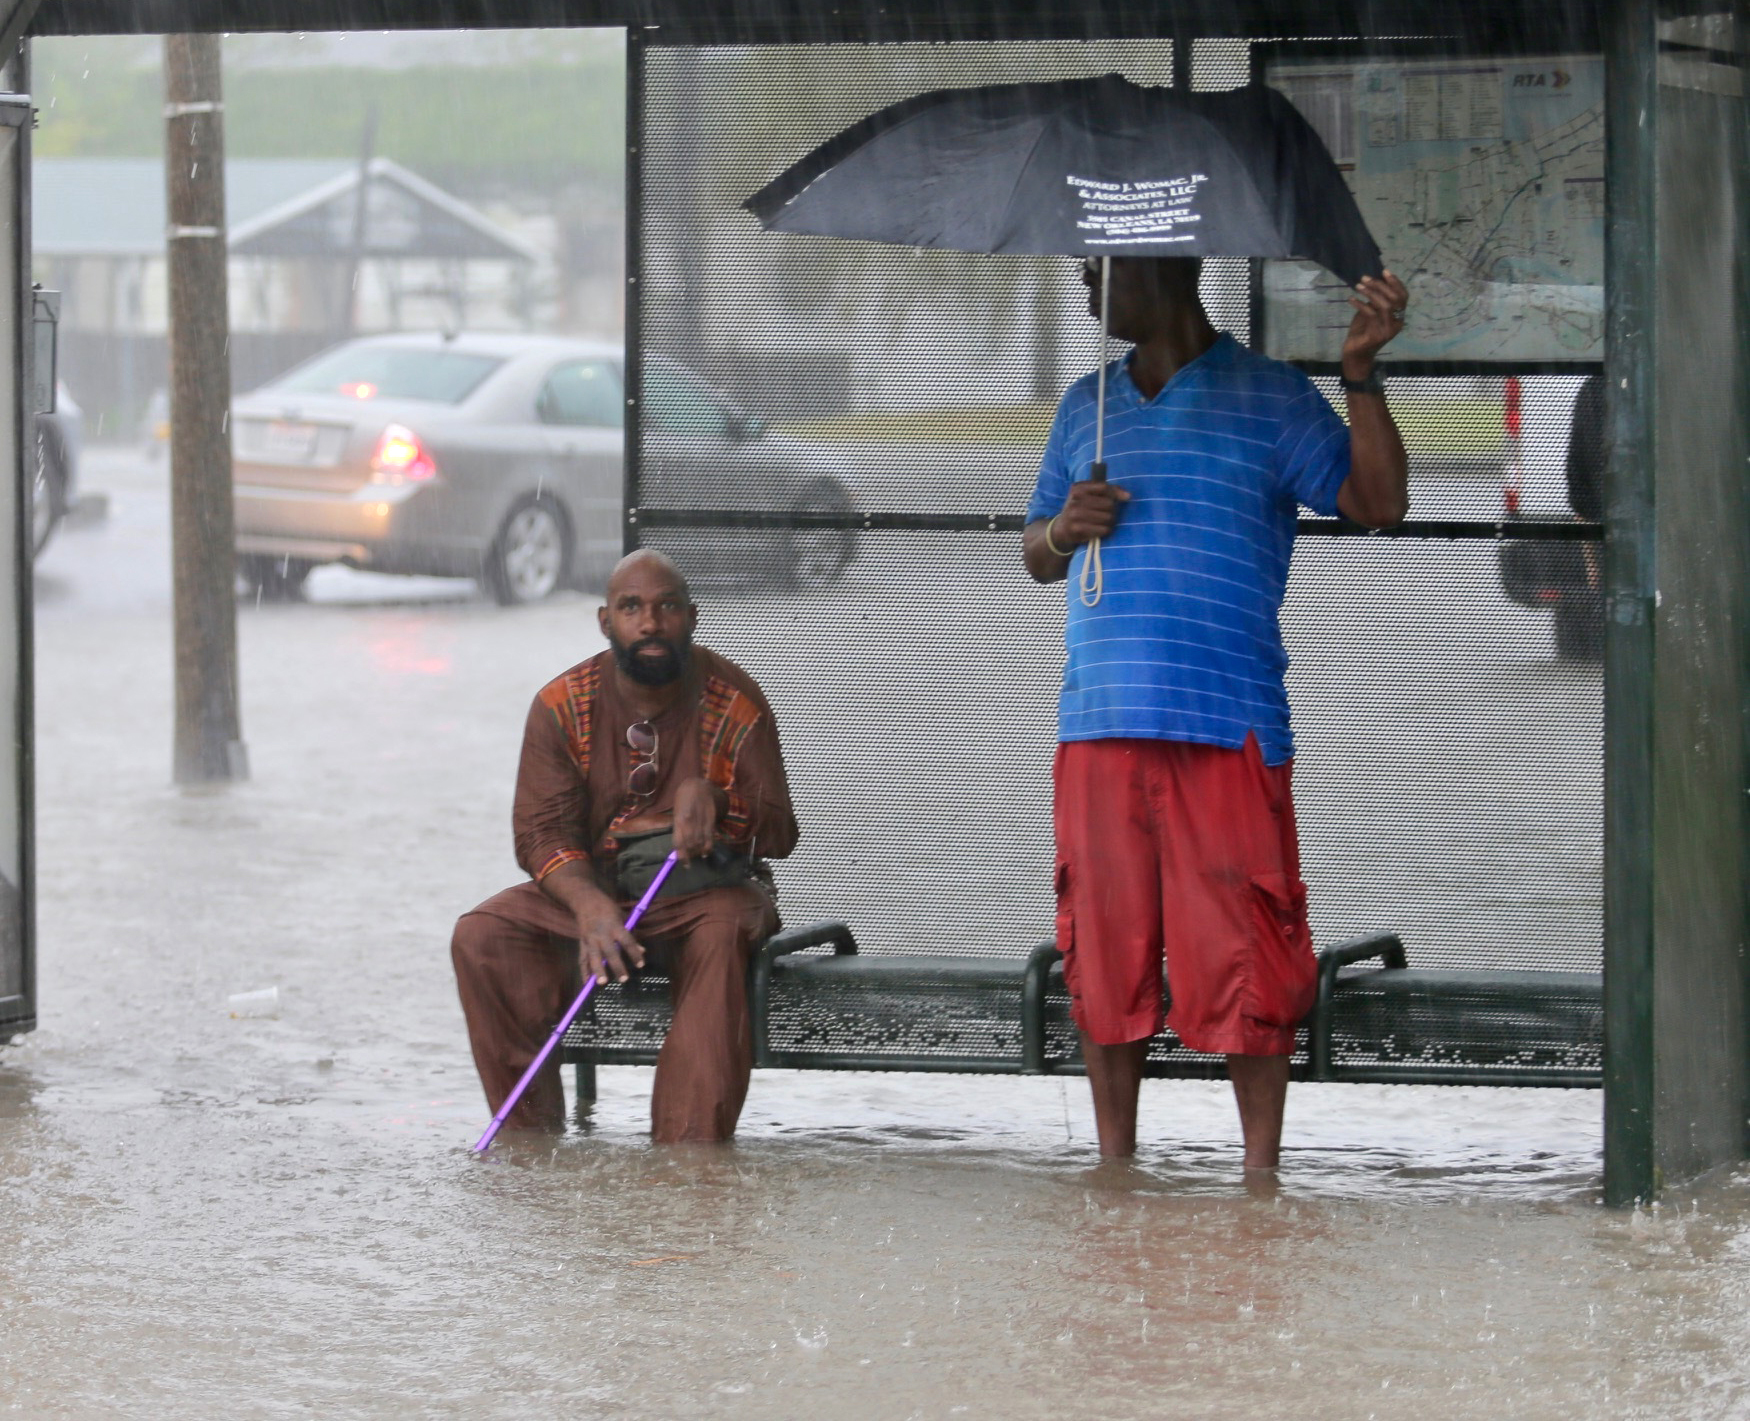 New Orleans braces for Barry and an inundation of water